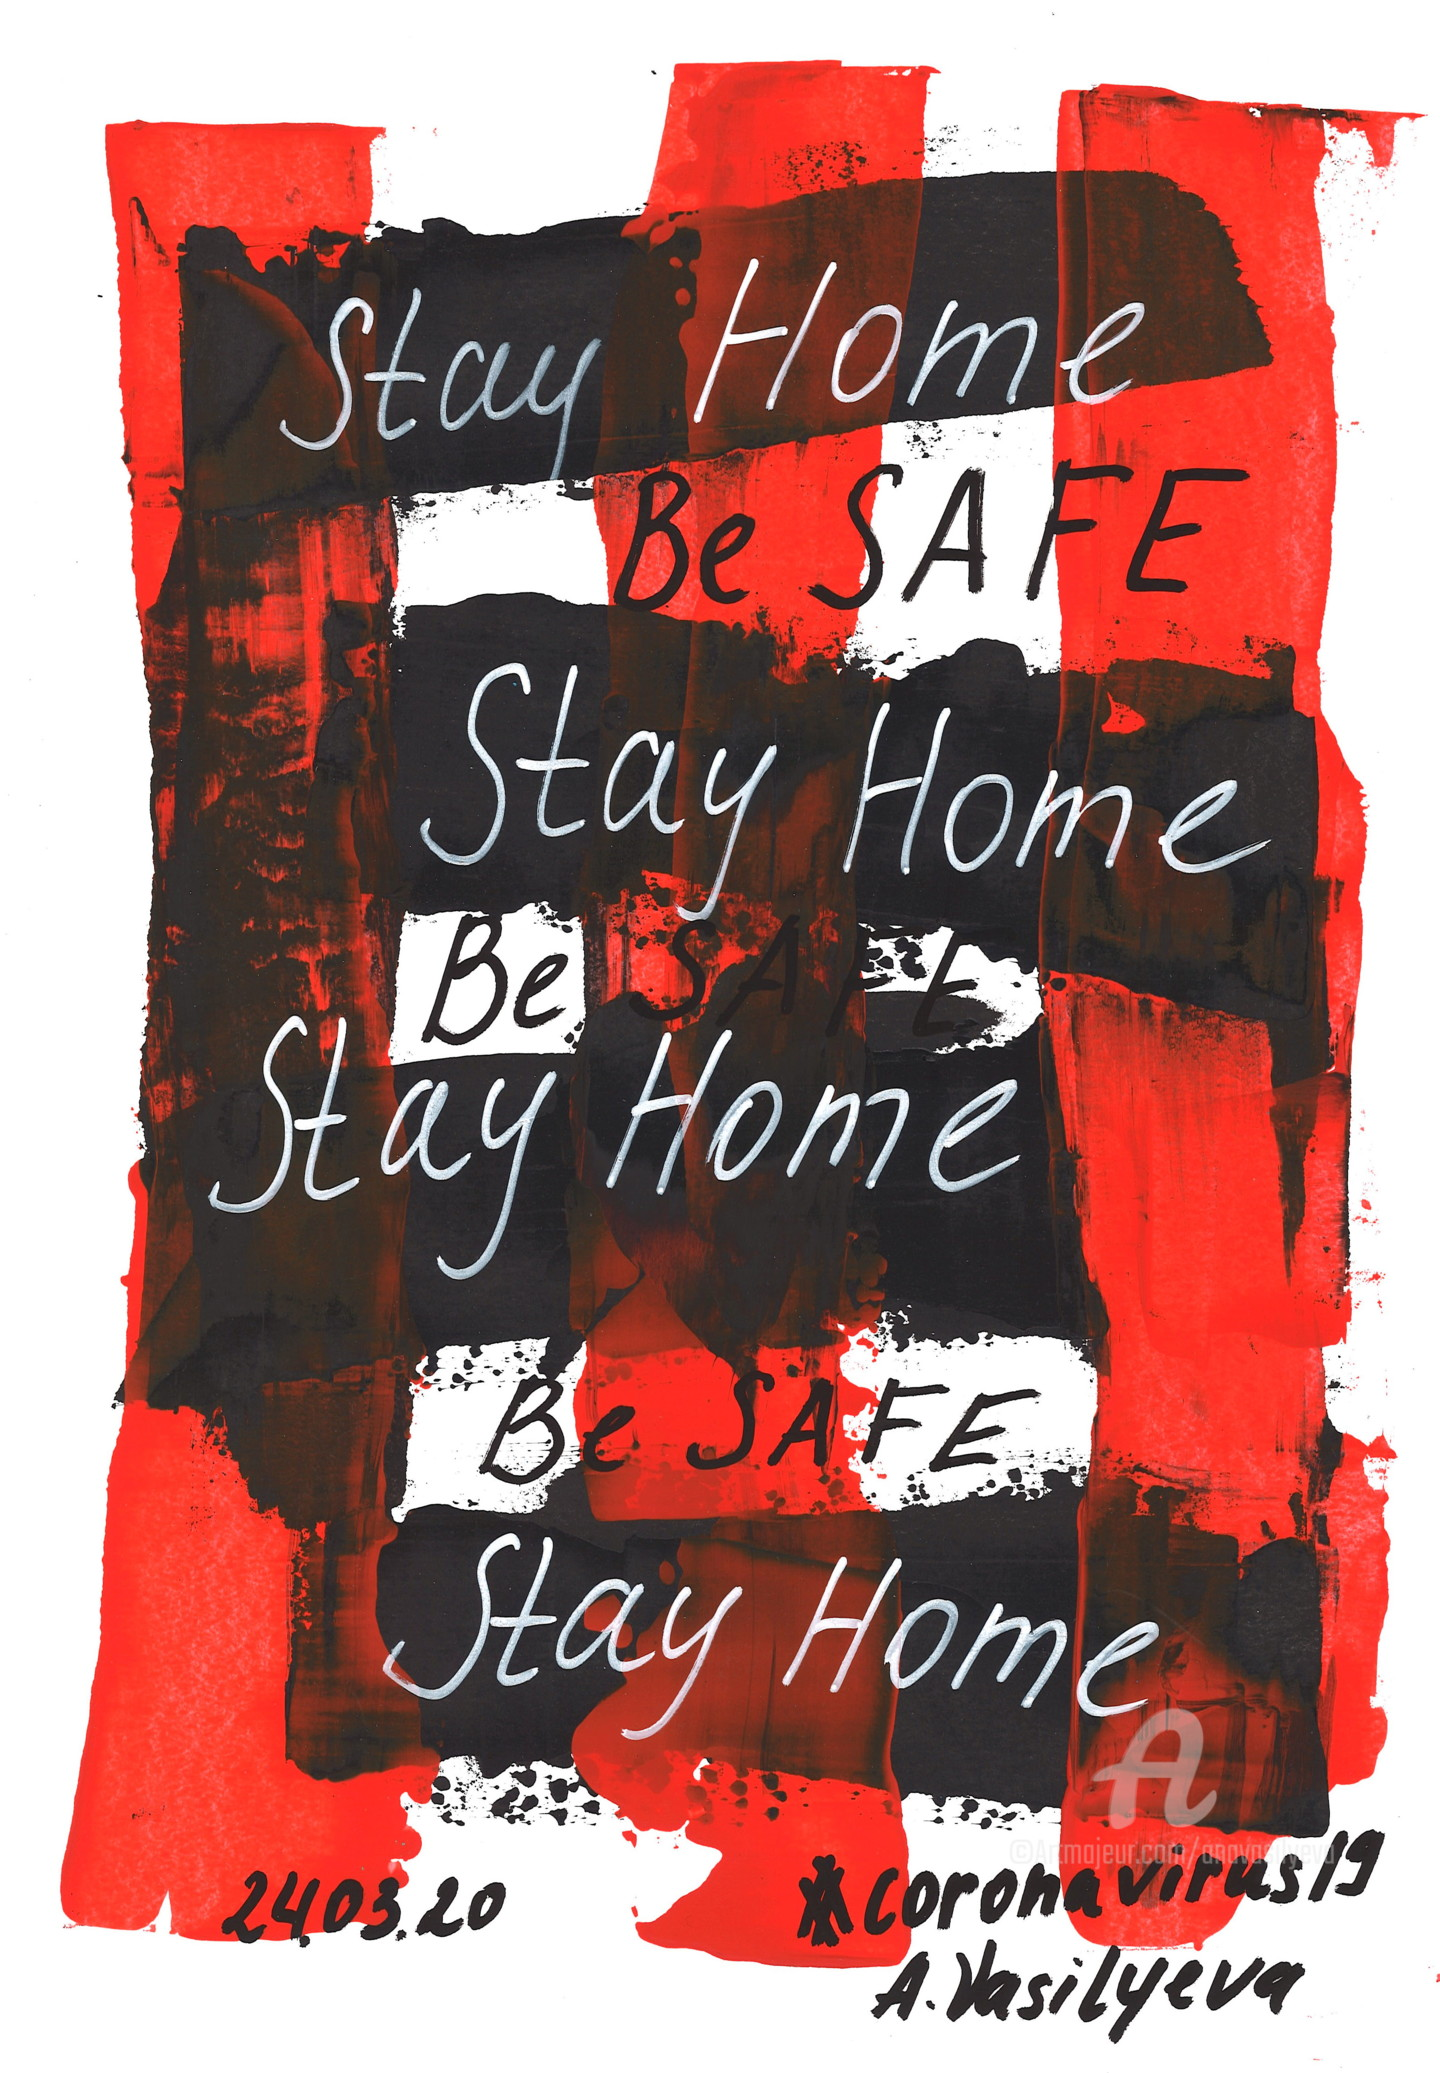 Anastasia Vasilyeva - 24.03.2020 - Stay Home, Be Safe. COVID-19 Documentary art.